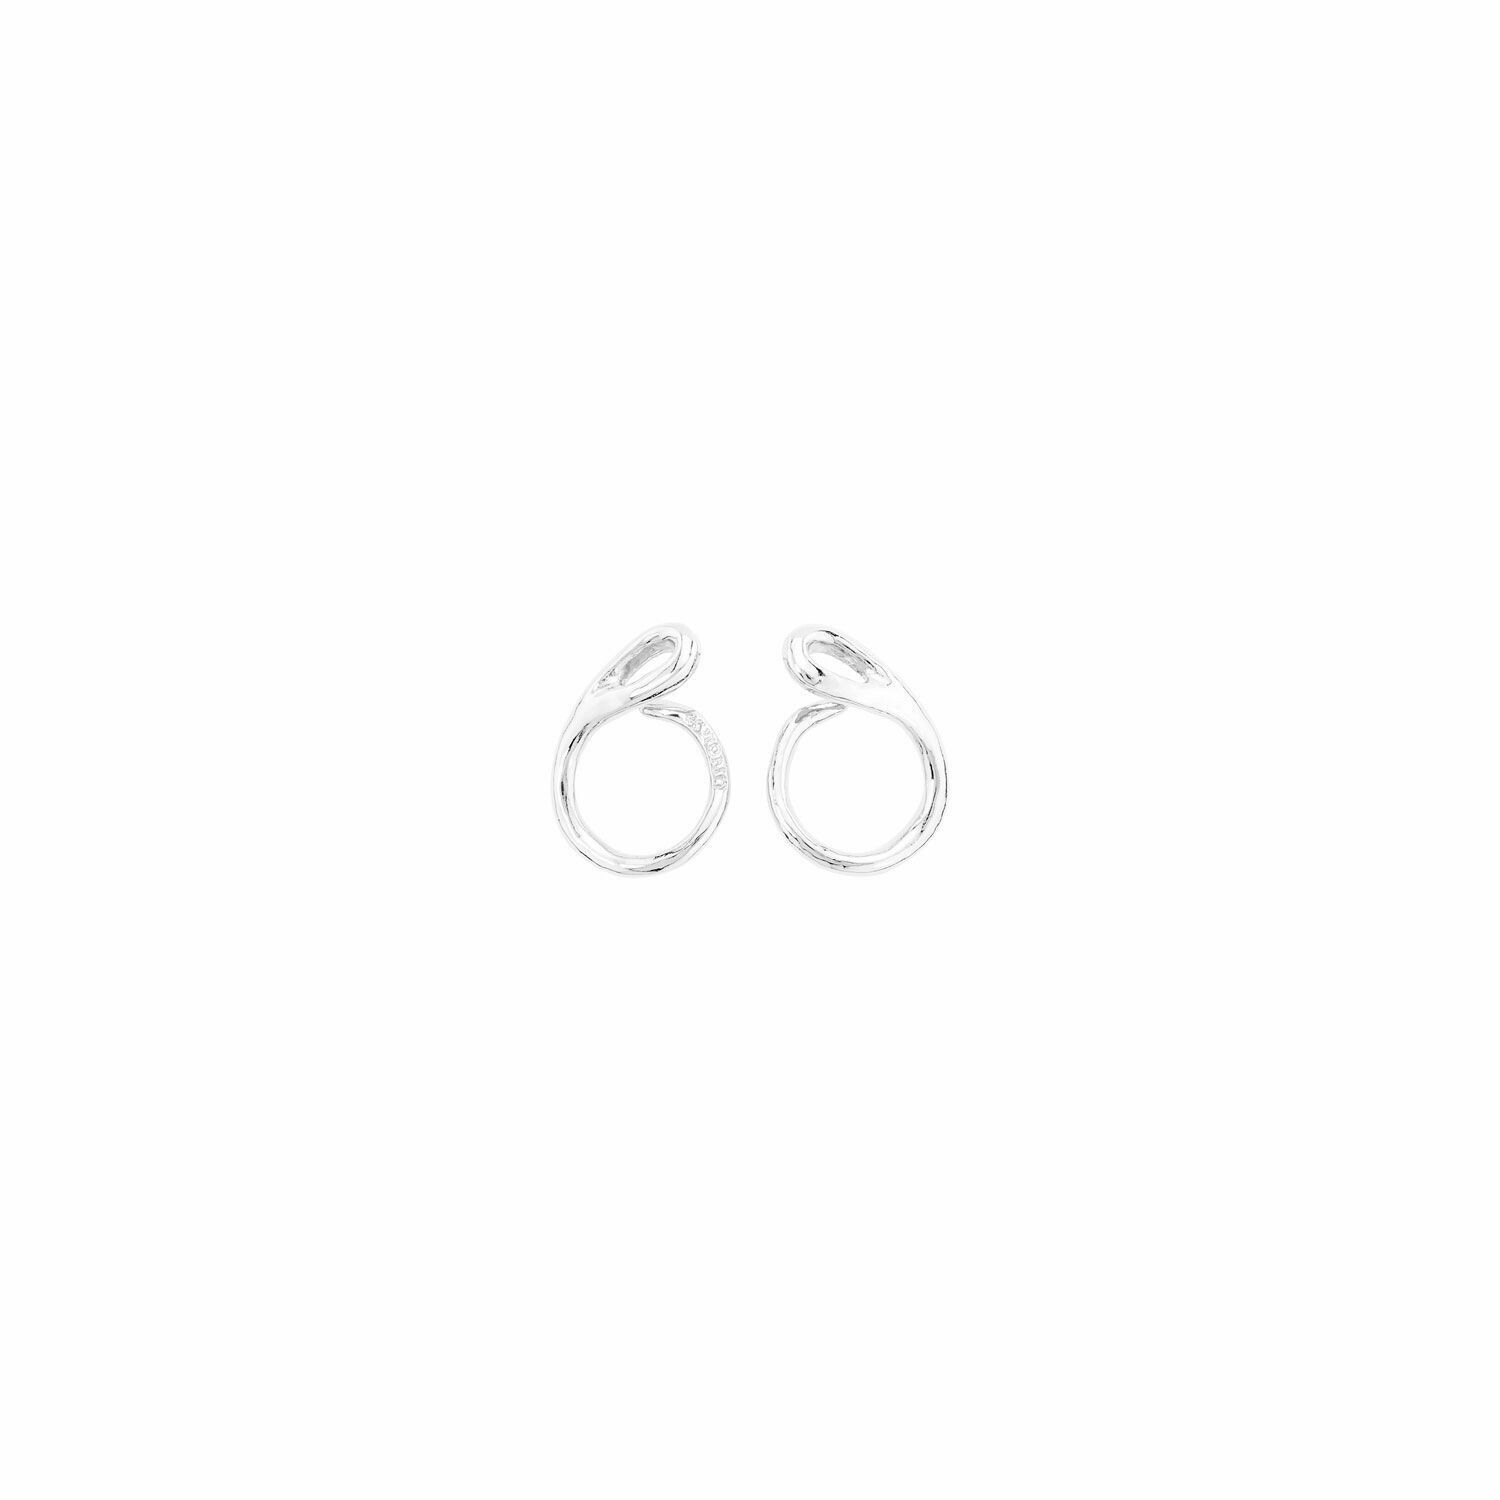 Connected Silver Earrings